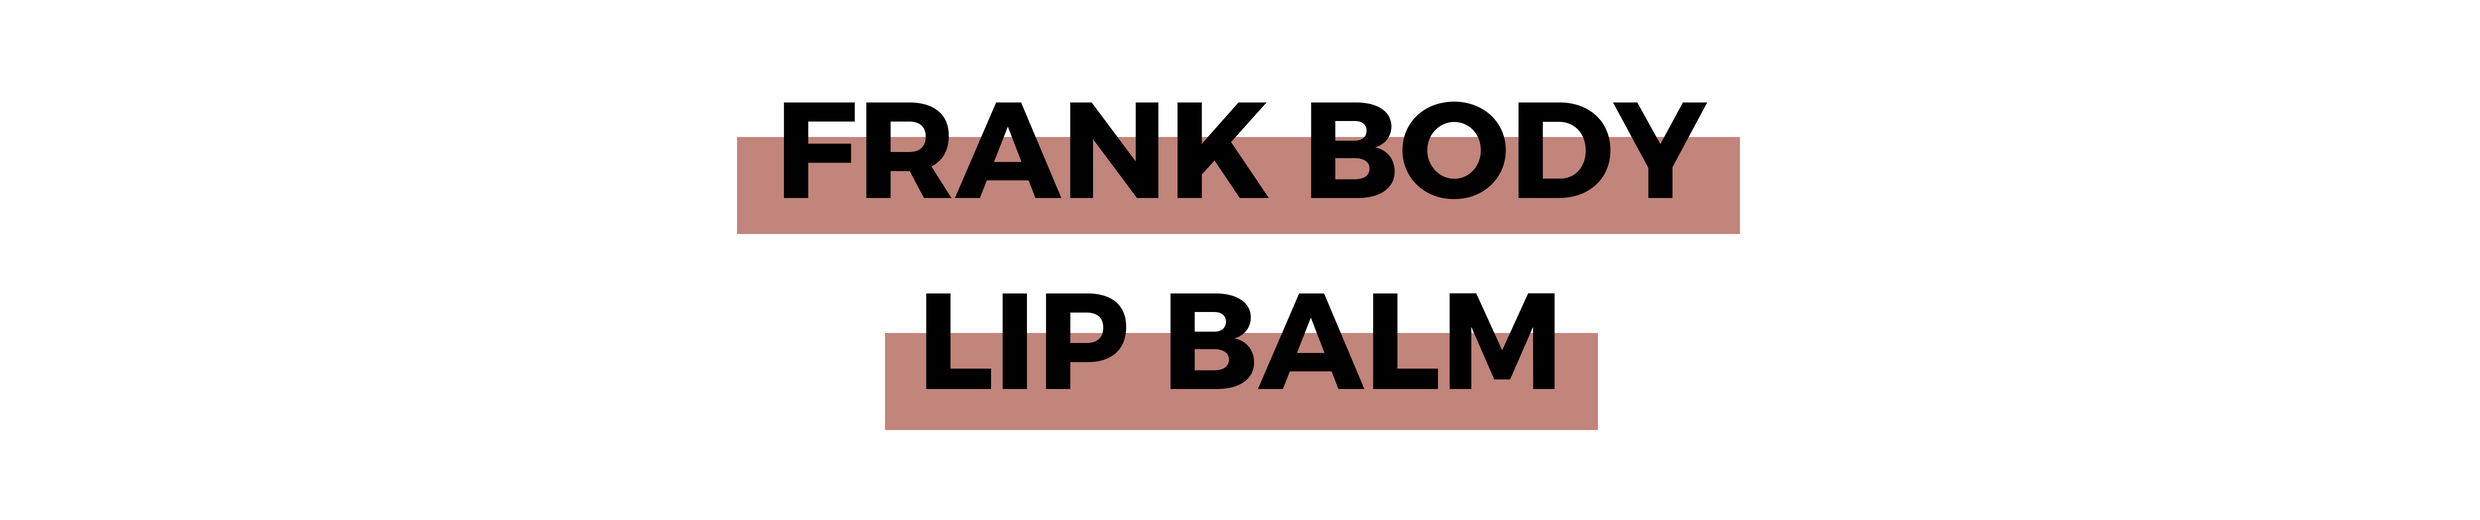 FRANK BODY LIP BALM.png